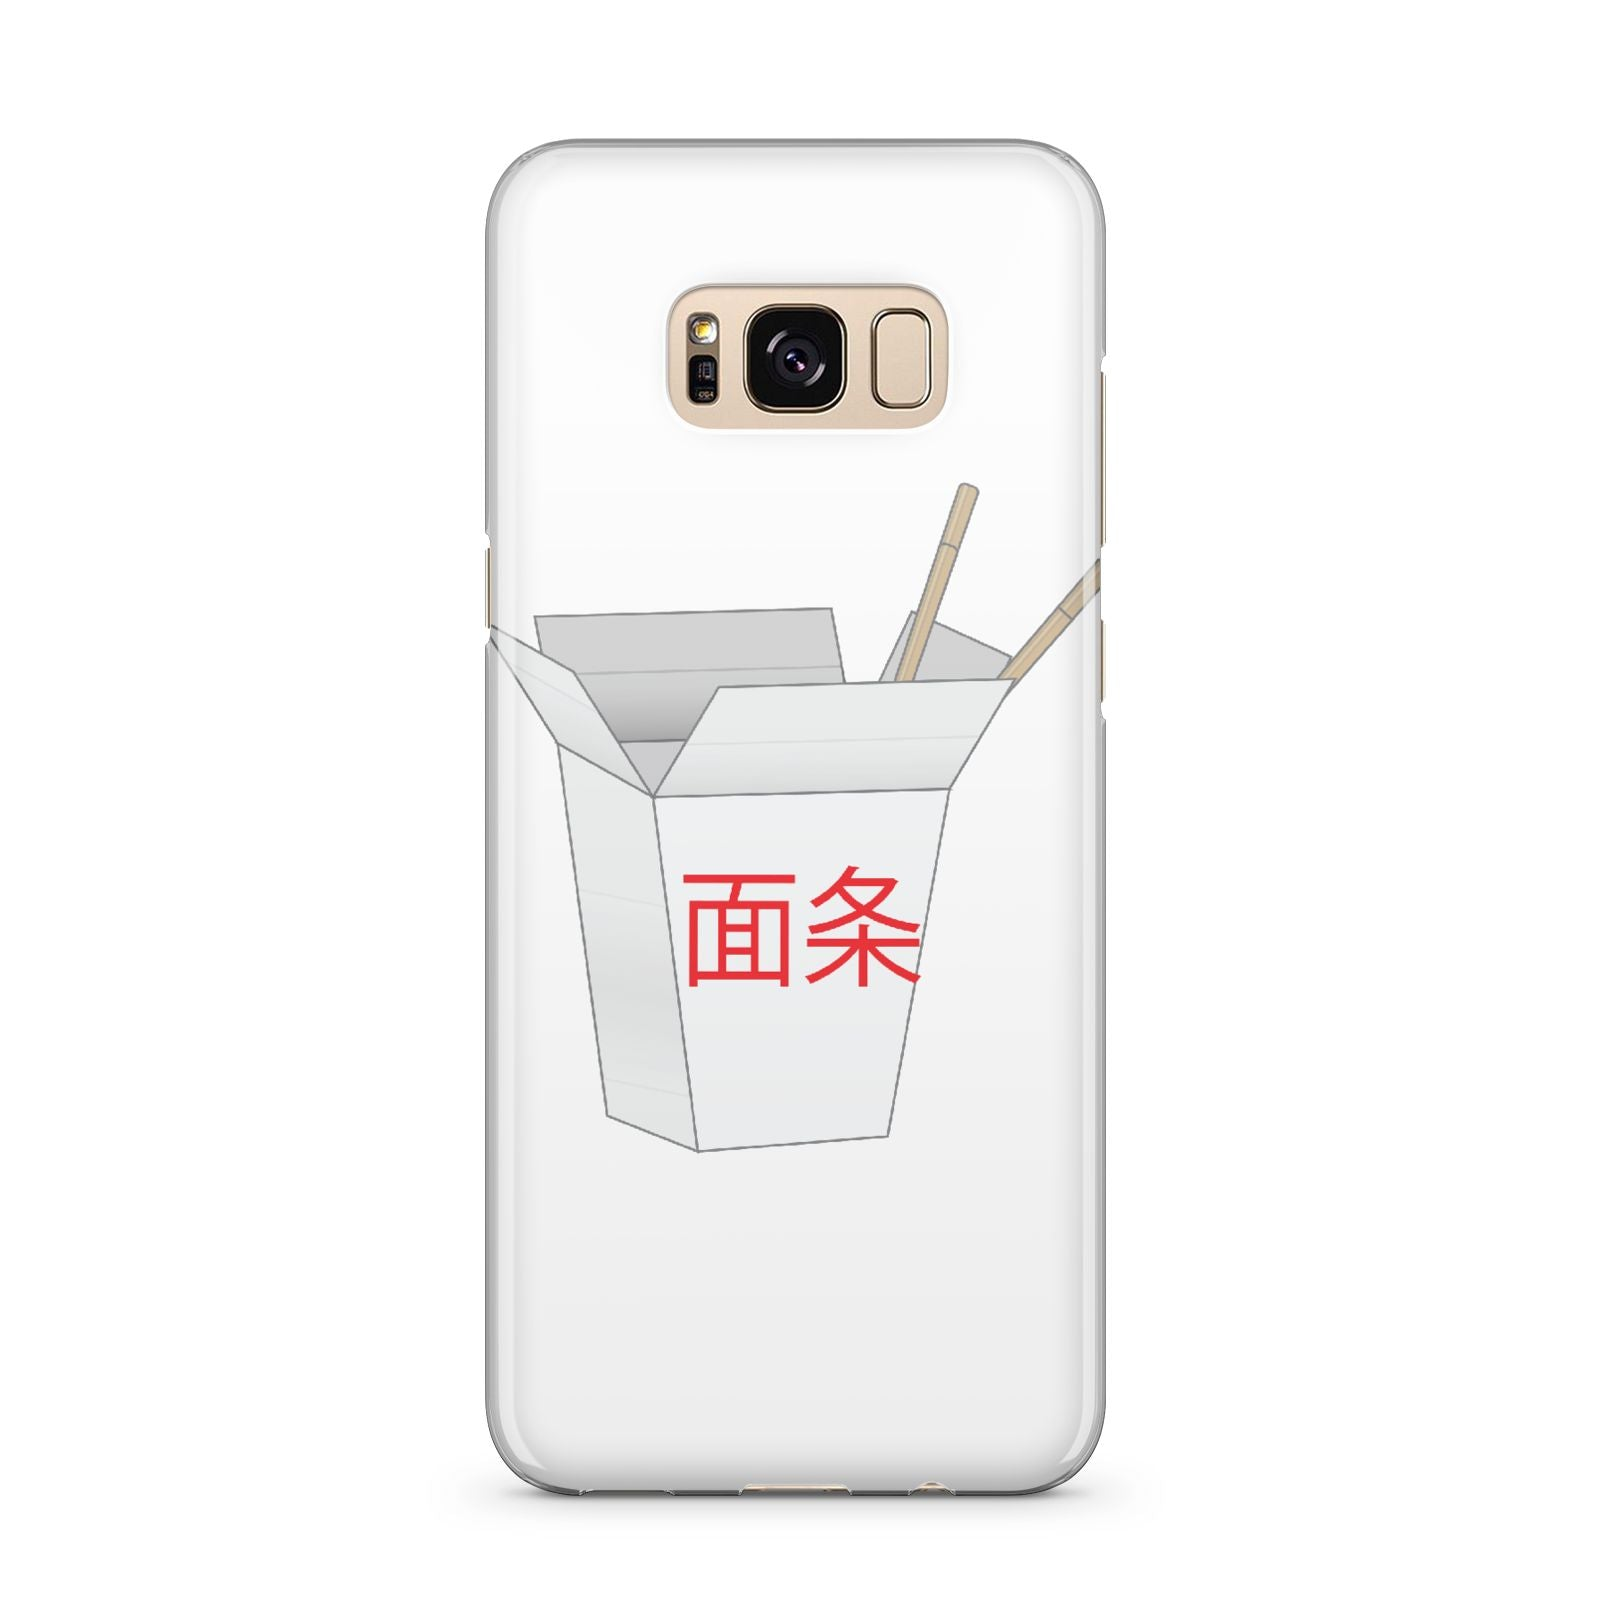 Chinese Takeaway Box Samsung Galaxy S8 Plus Case